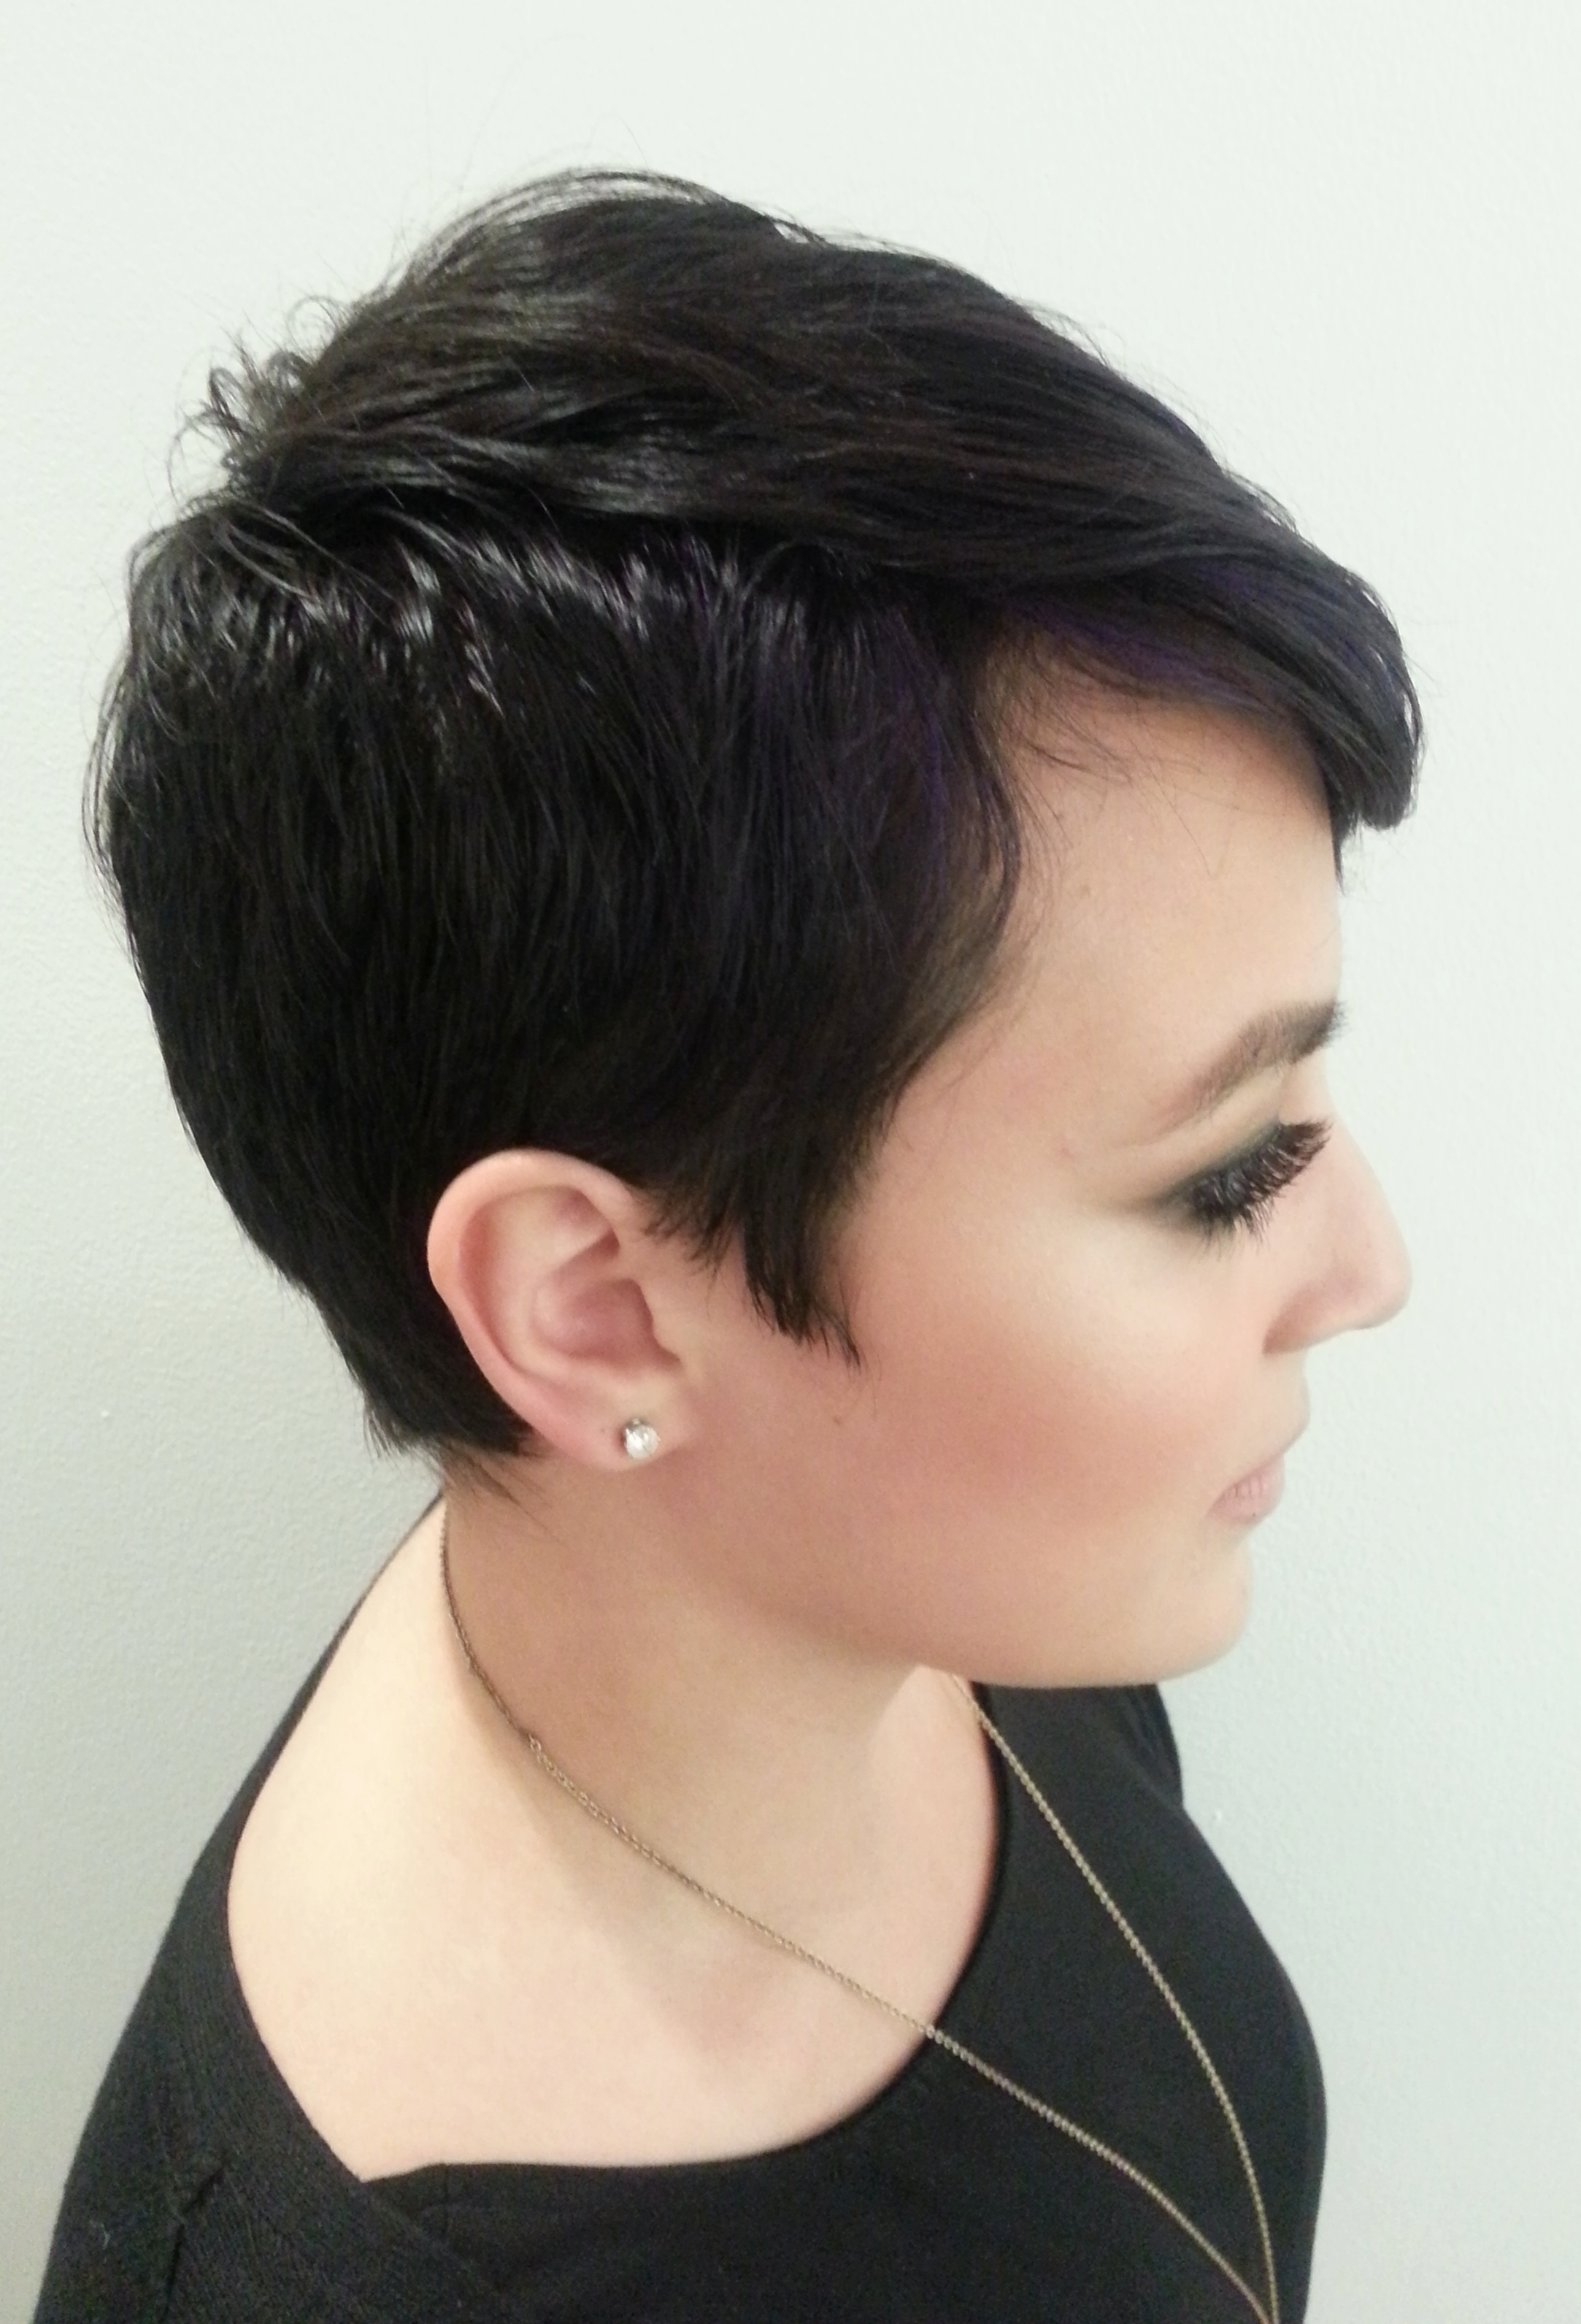 Gallery of Pixie Hairstyles For Thick Coarse Hair Showing 7